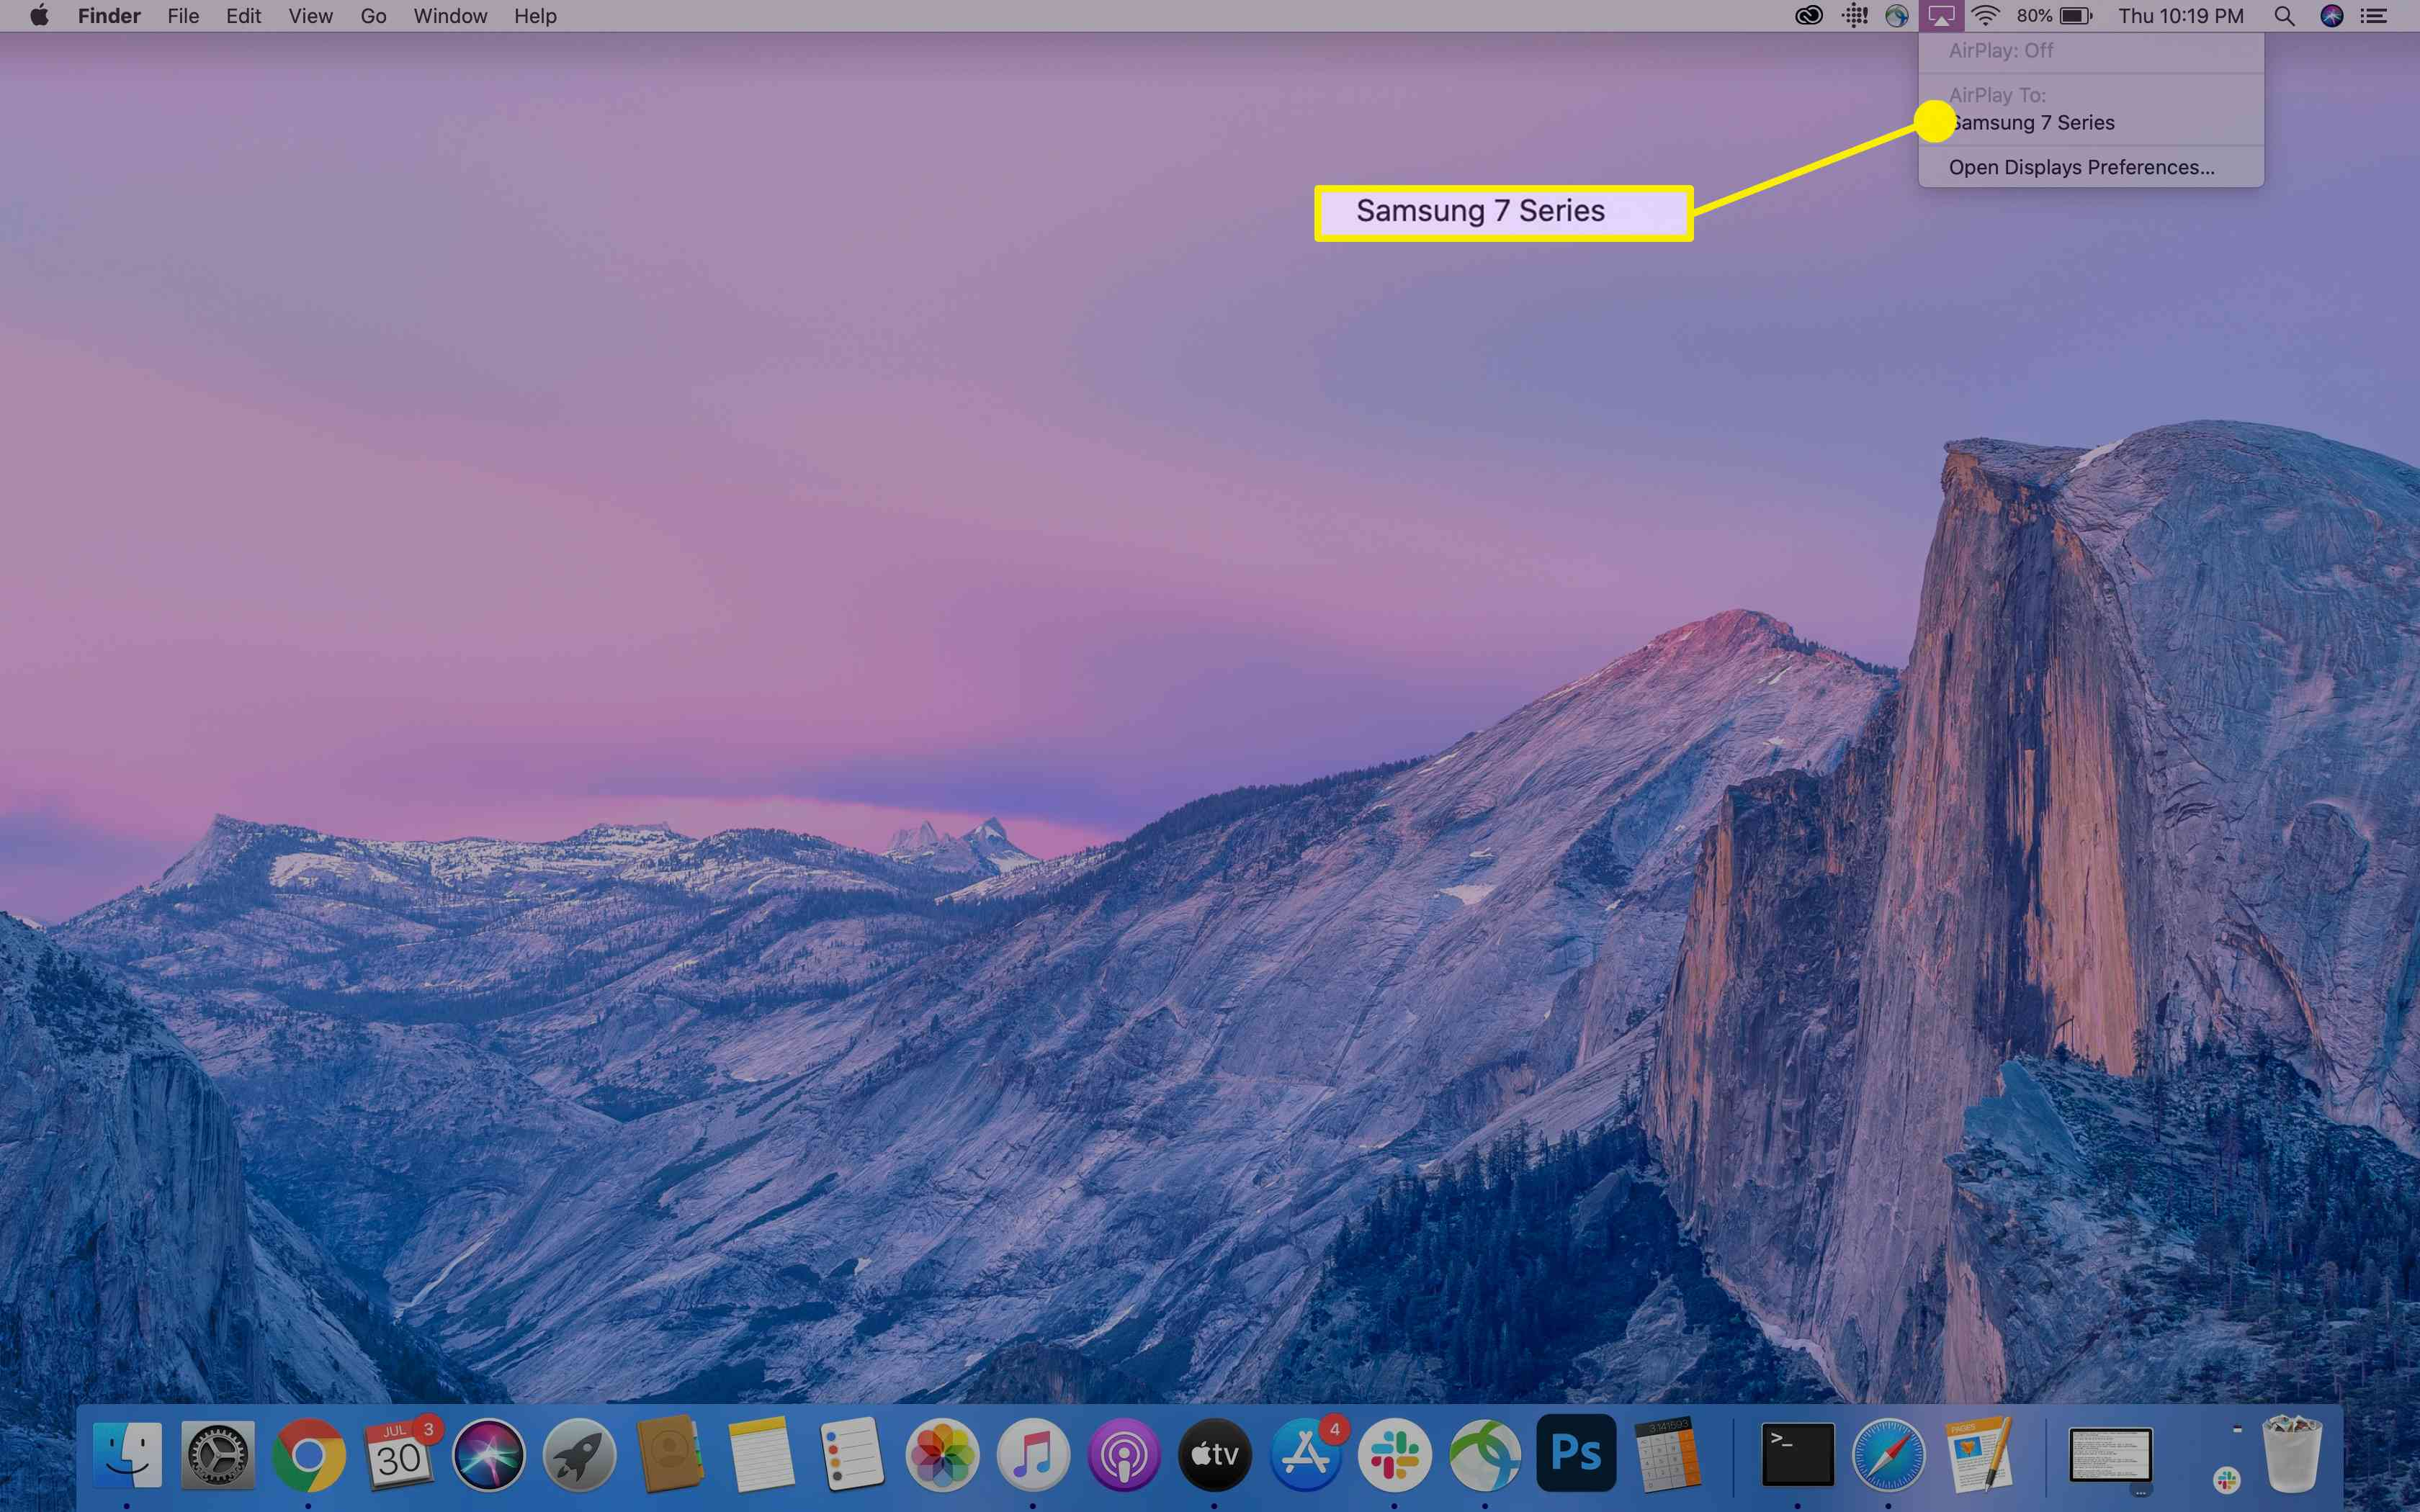 An available device to mirror to using the AirPlay icon on a MacBook.